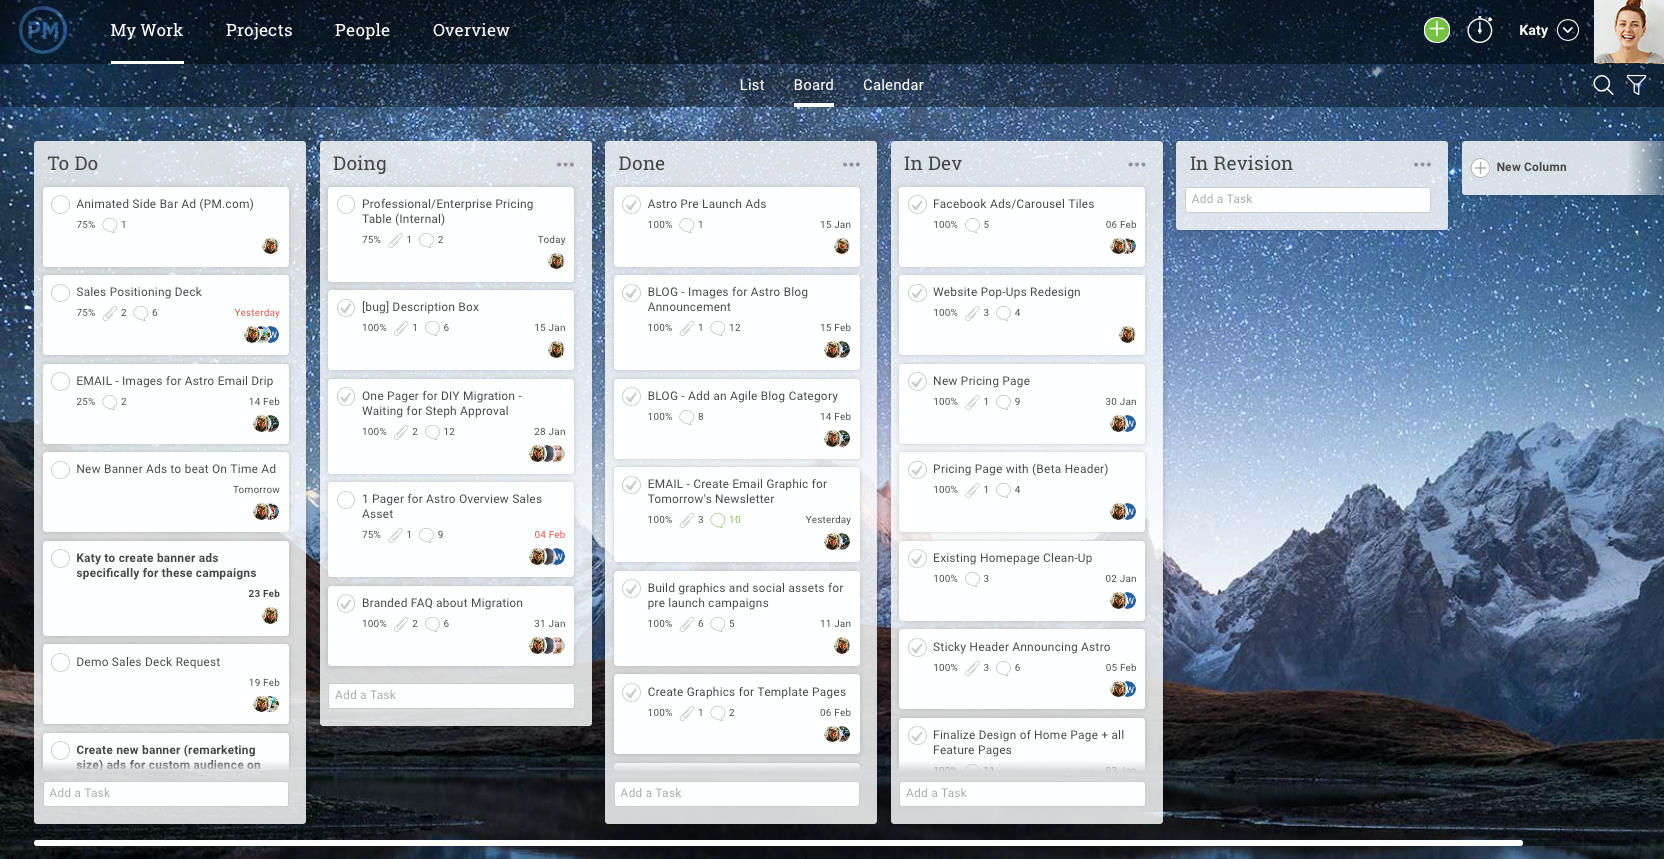 Easy-to-use kanban boards allow you to drag and drop tasks in the right column